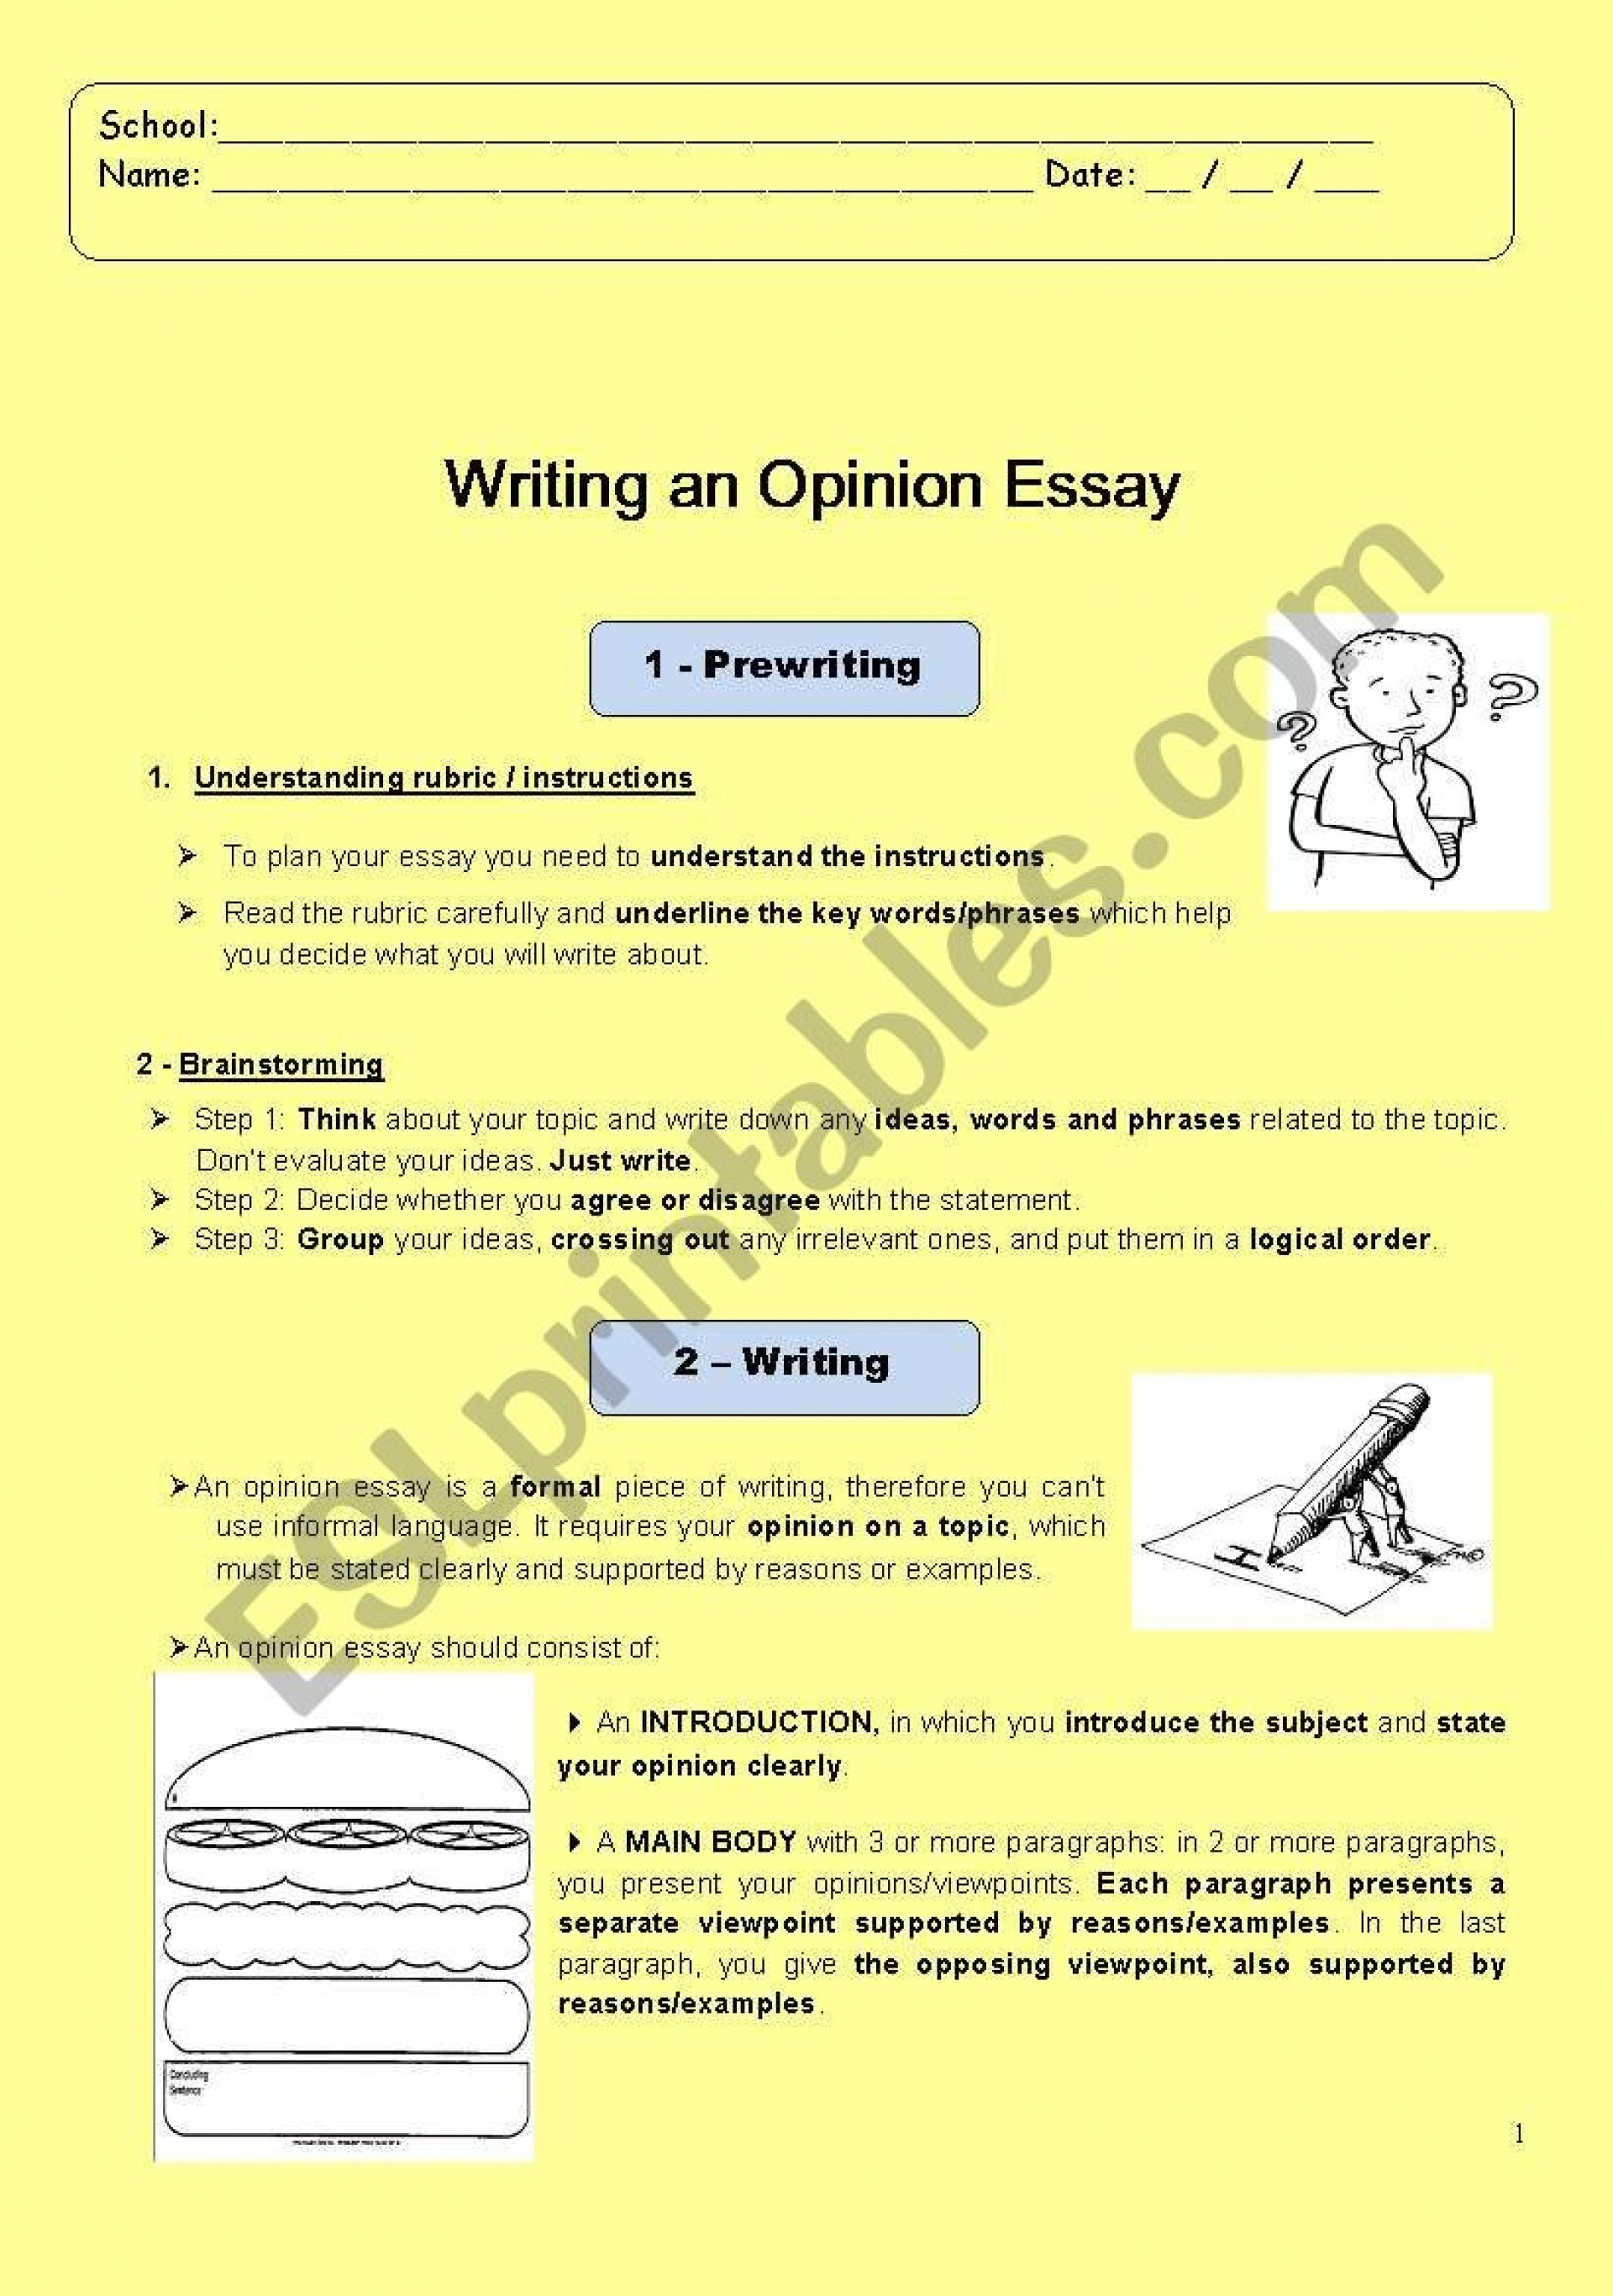 020 519469 1 How To Write An Essay Example Writing Shocking Opinion Argumentative 5th Grade Video 1920